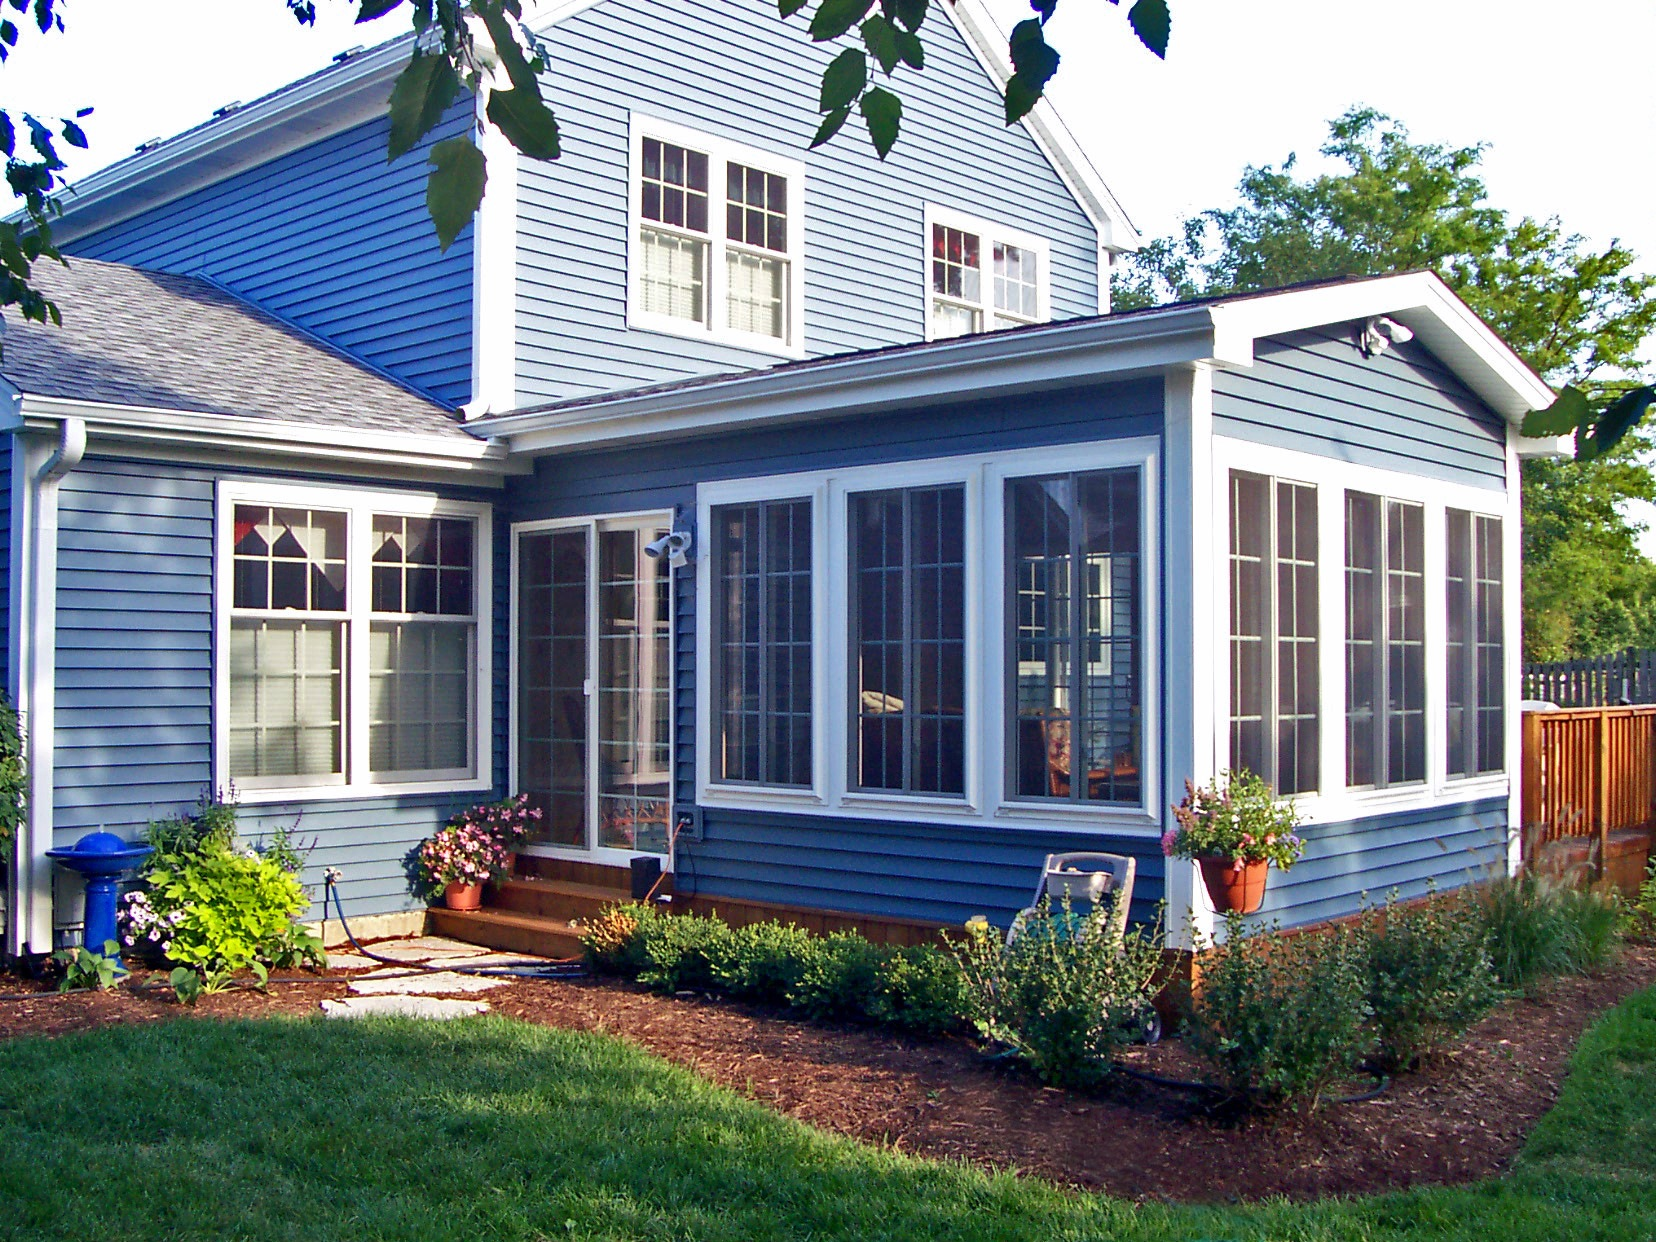 Sunrooms shiretown home improvements glass for Home plans with sunrooms